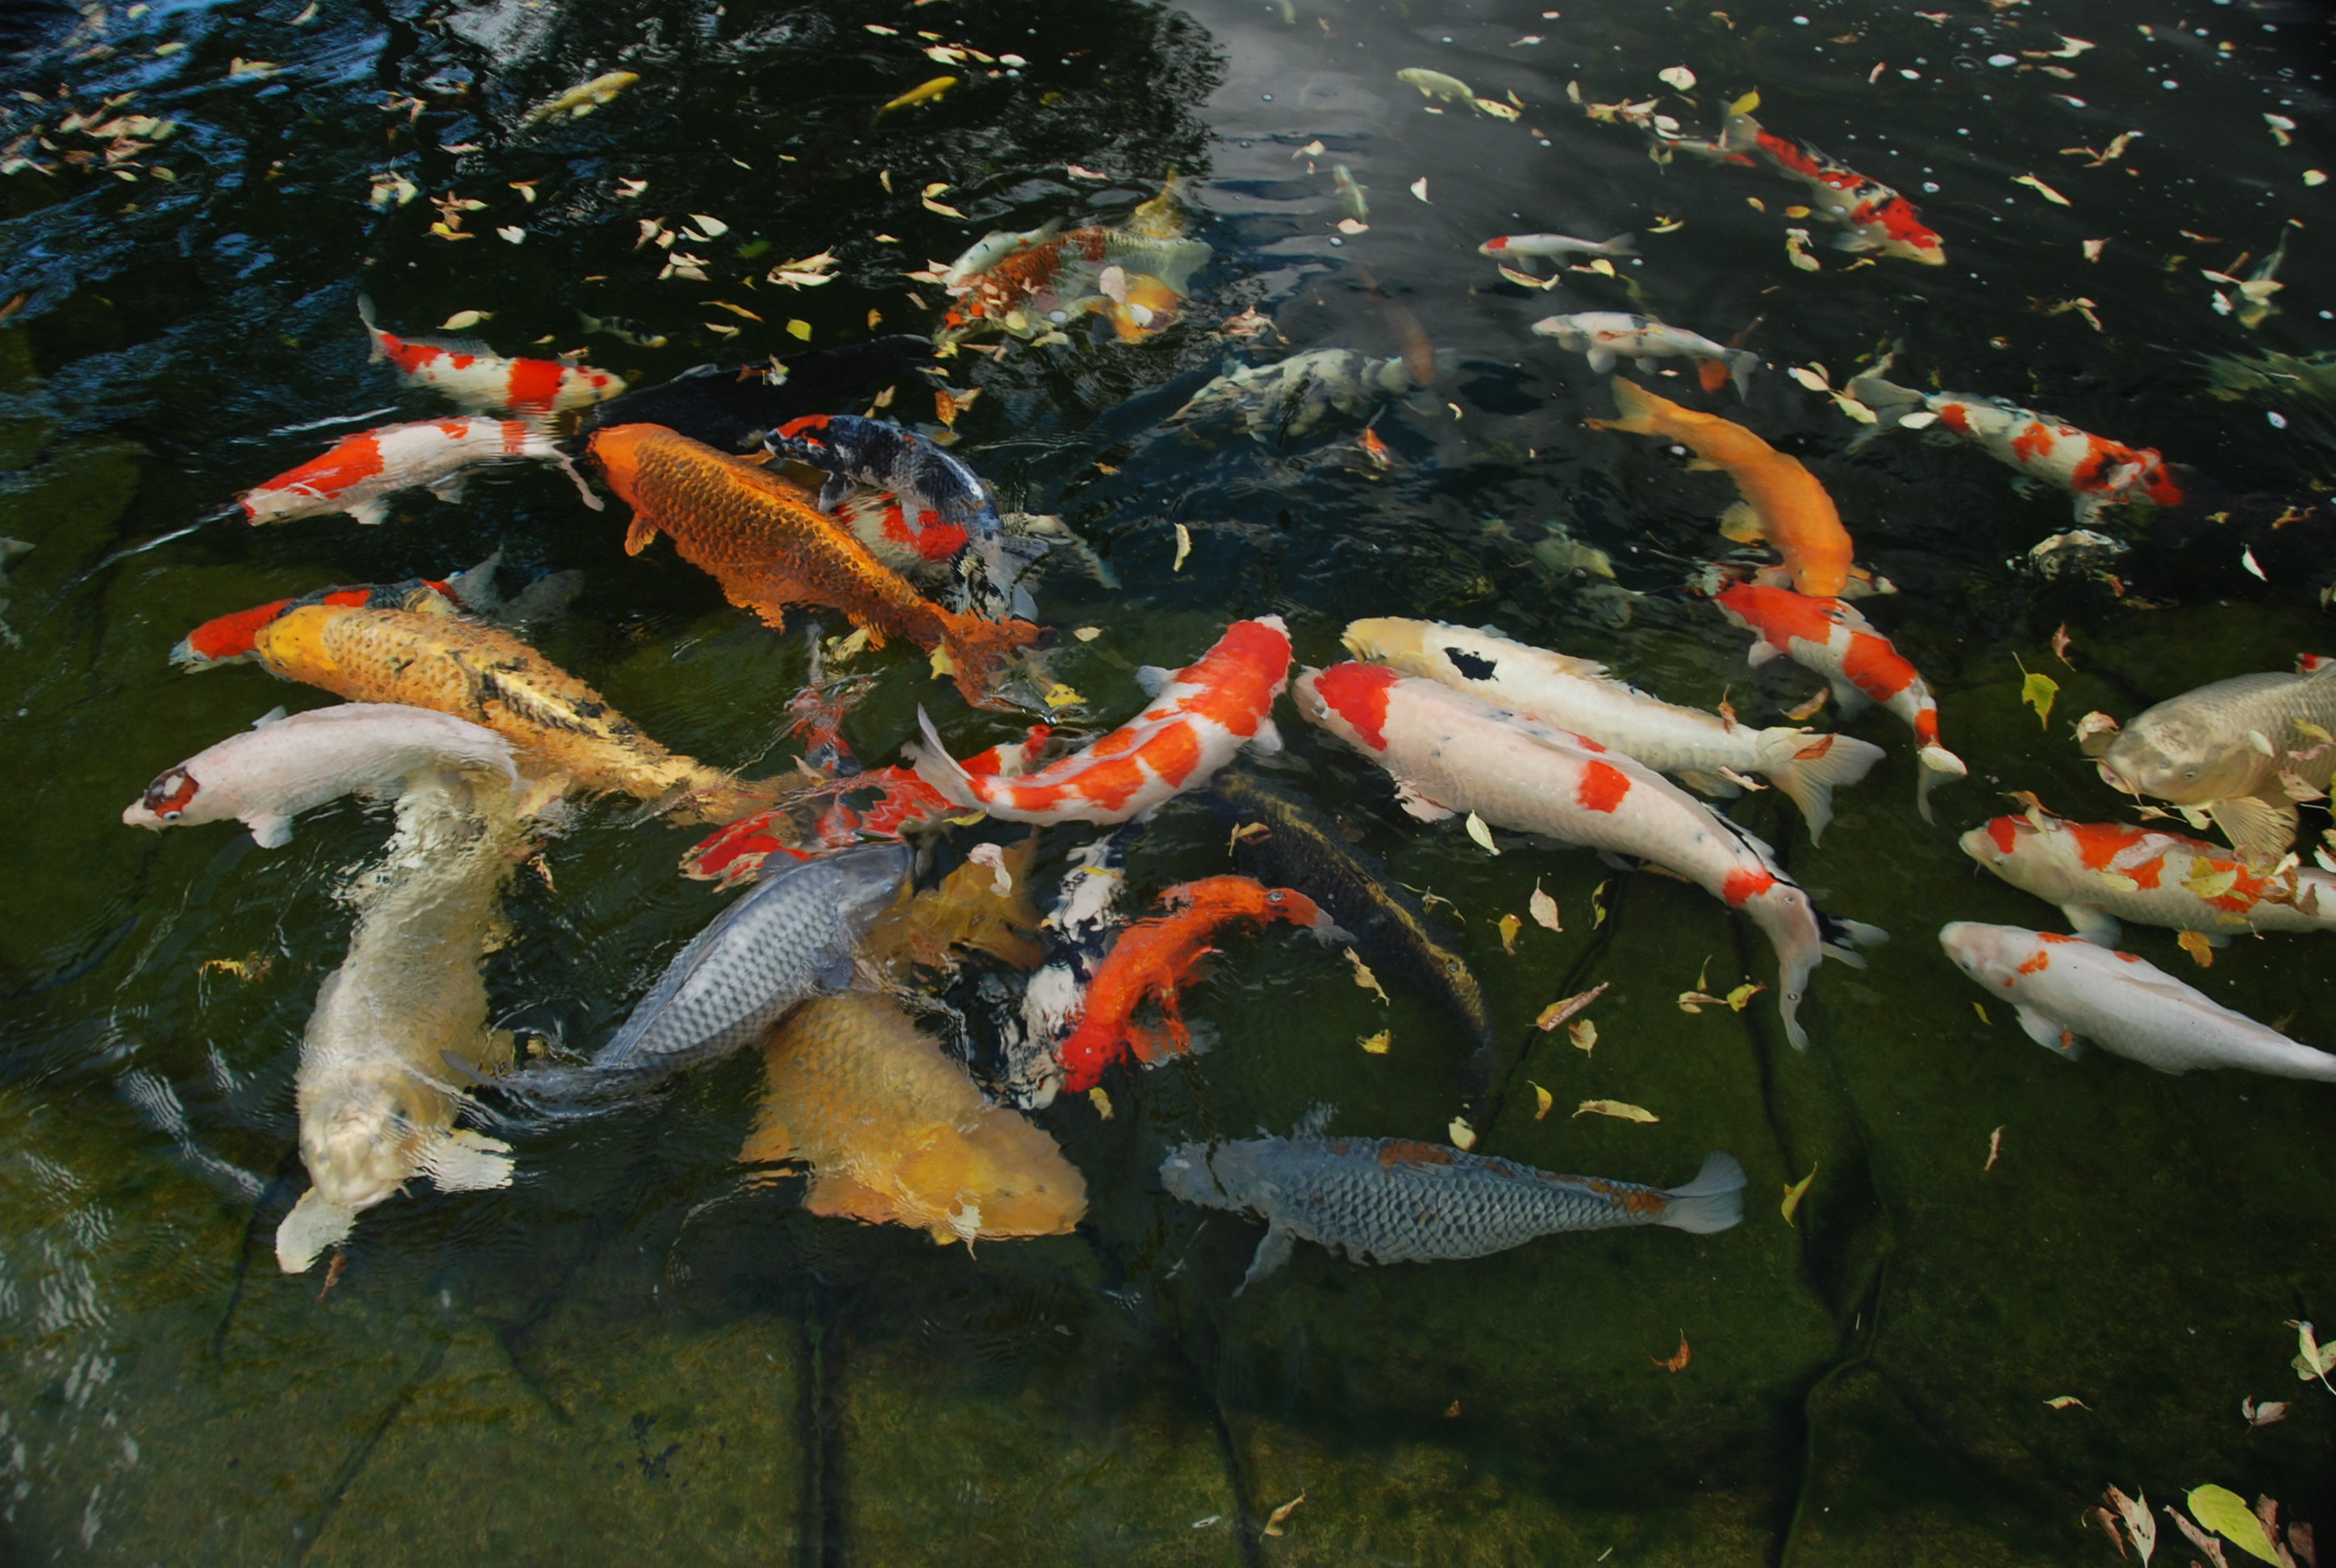 Koi acres imported japanese koi online shopping for koi for Keeping koi carp